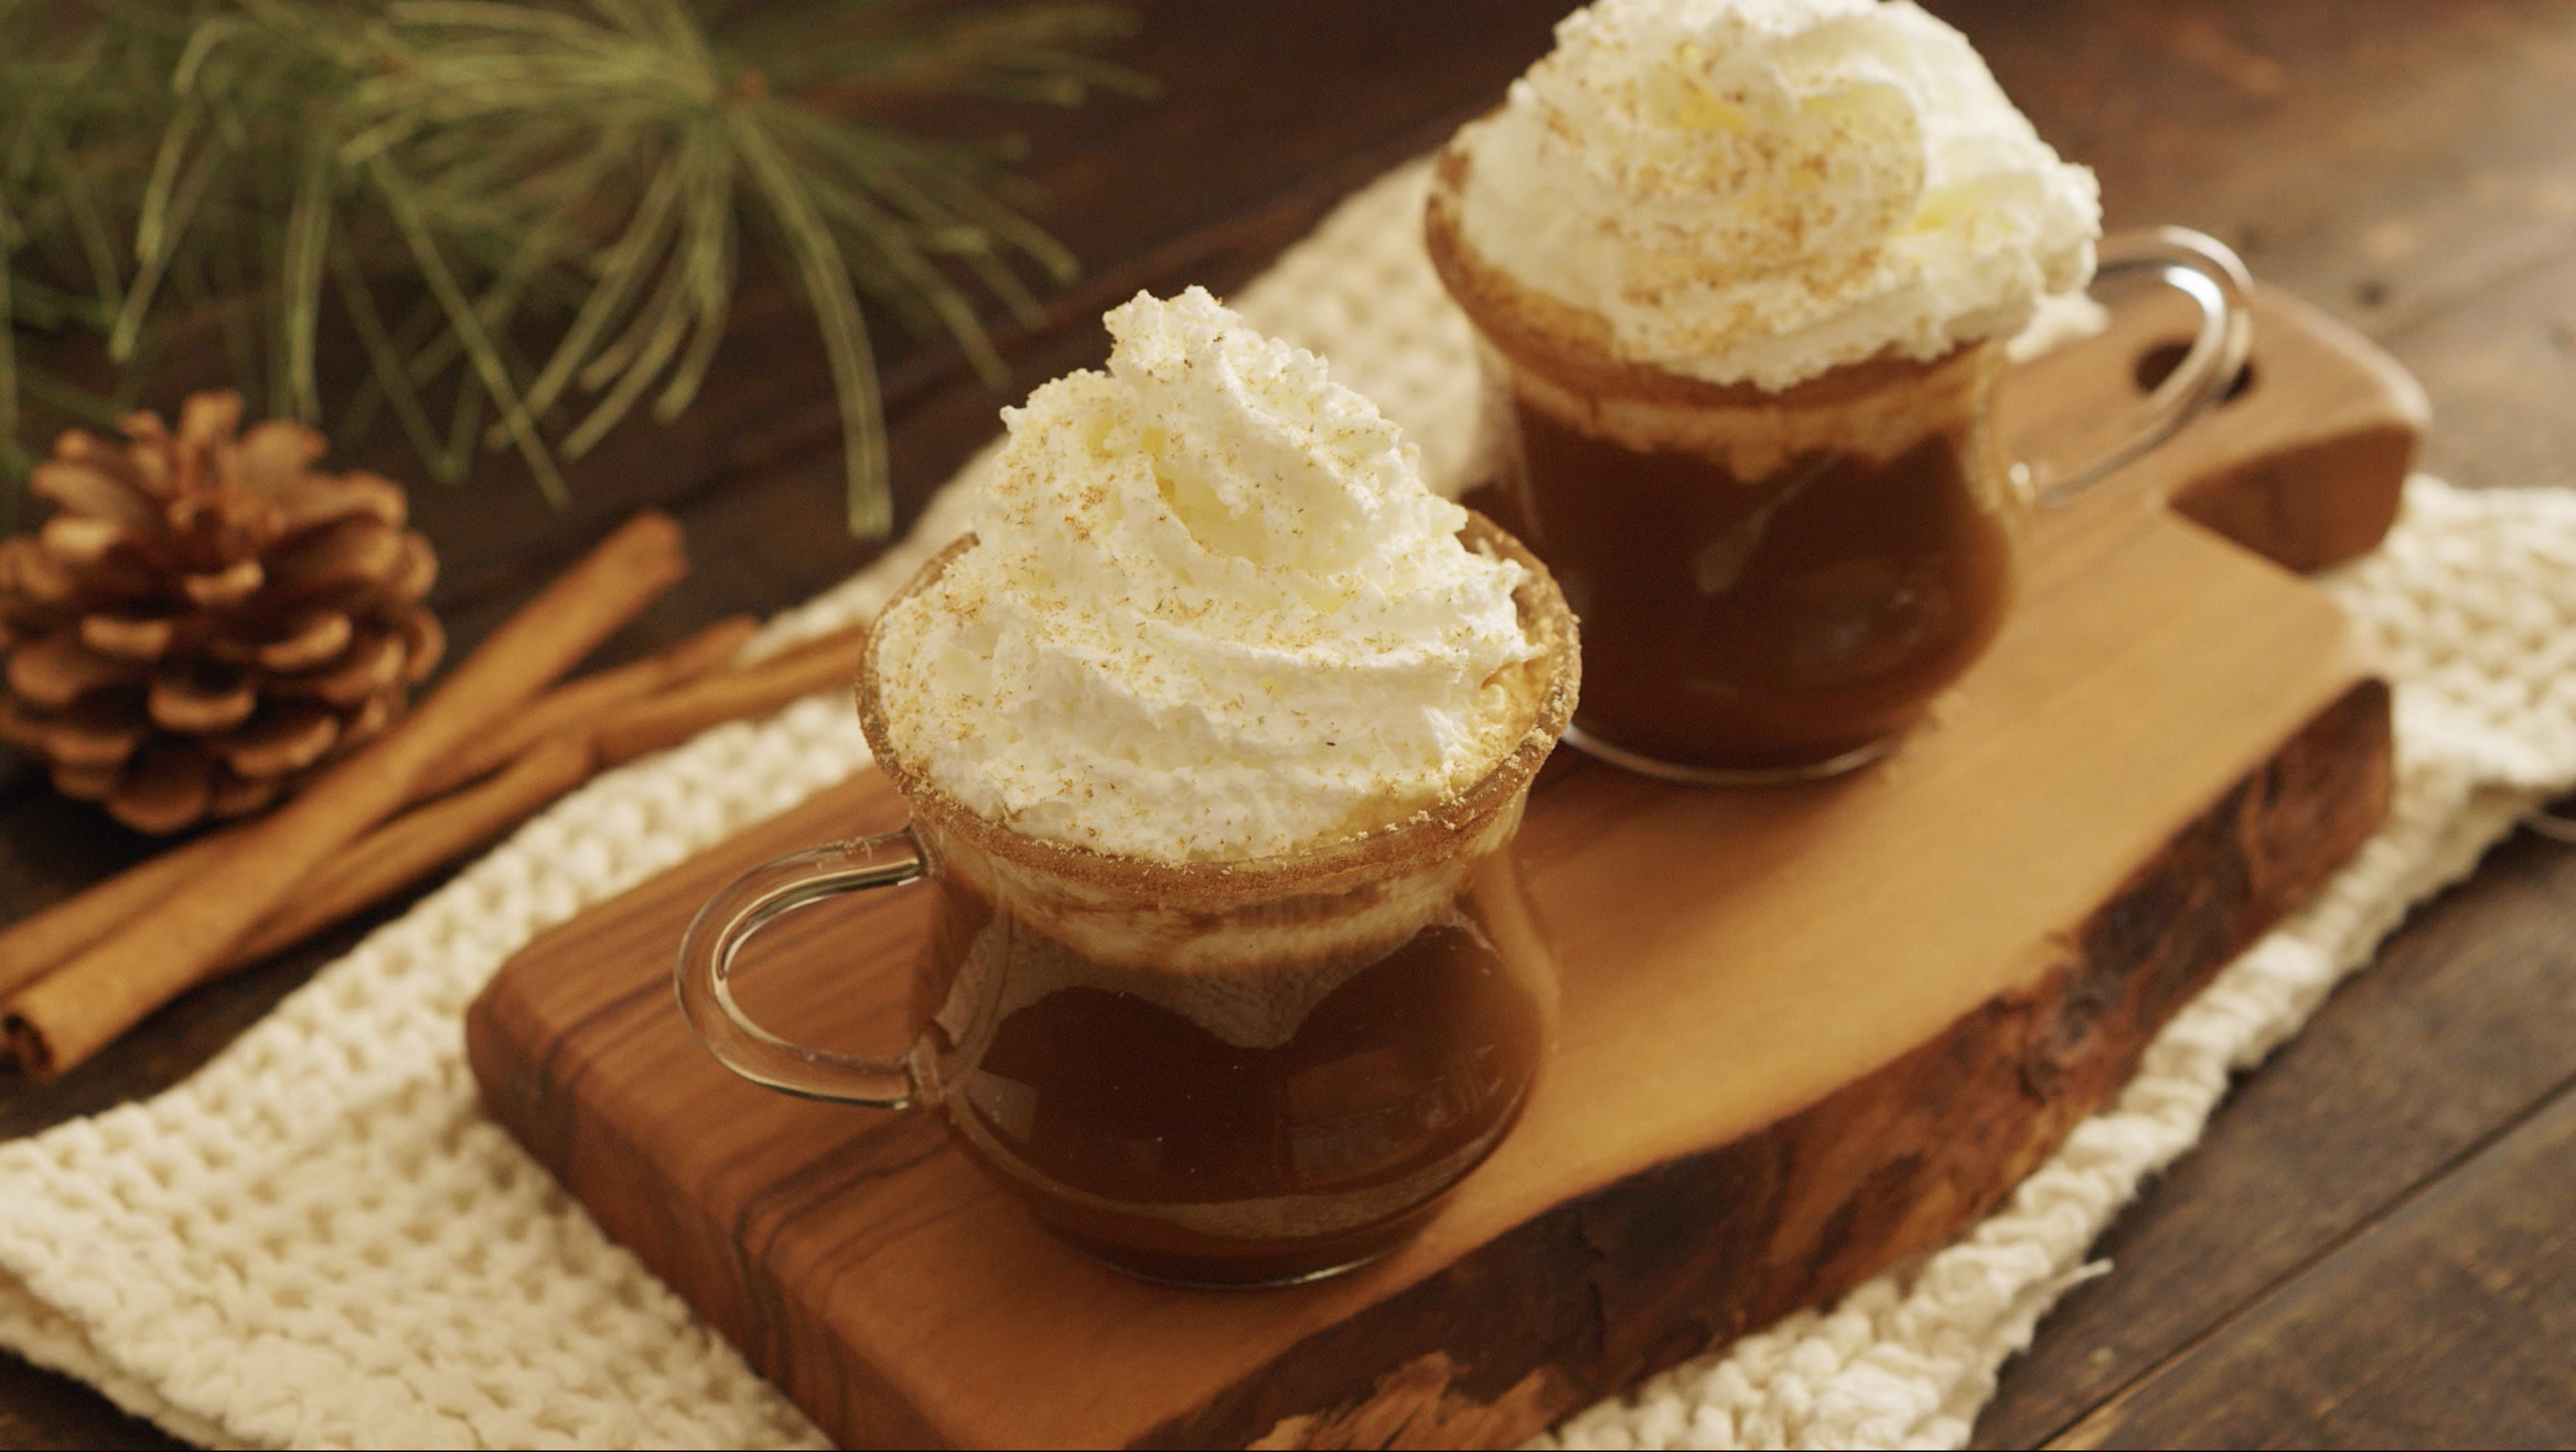 Ring in the holidays with this easy gingerbread eggnog cocktail